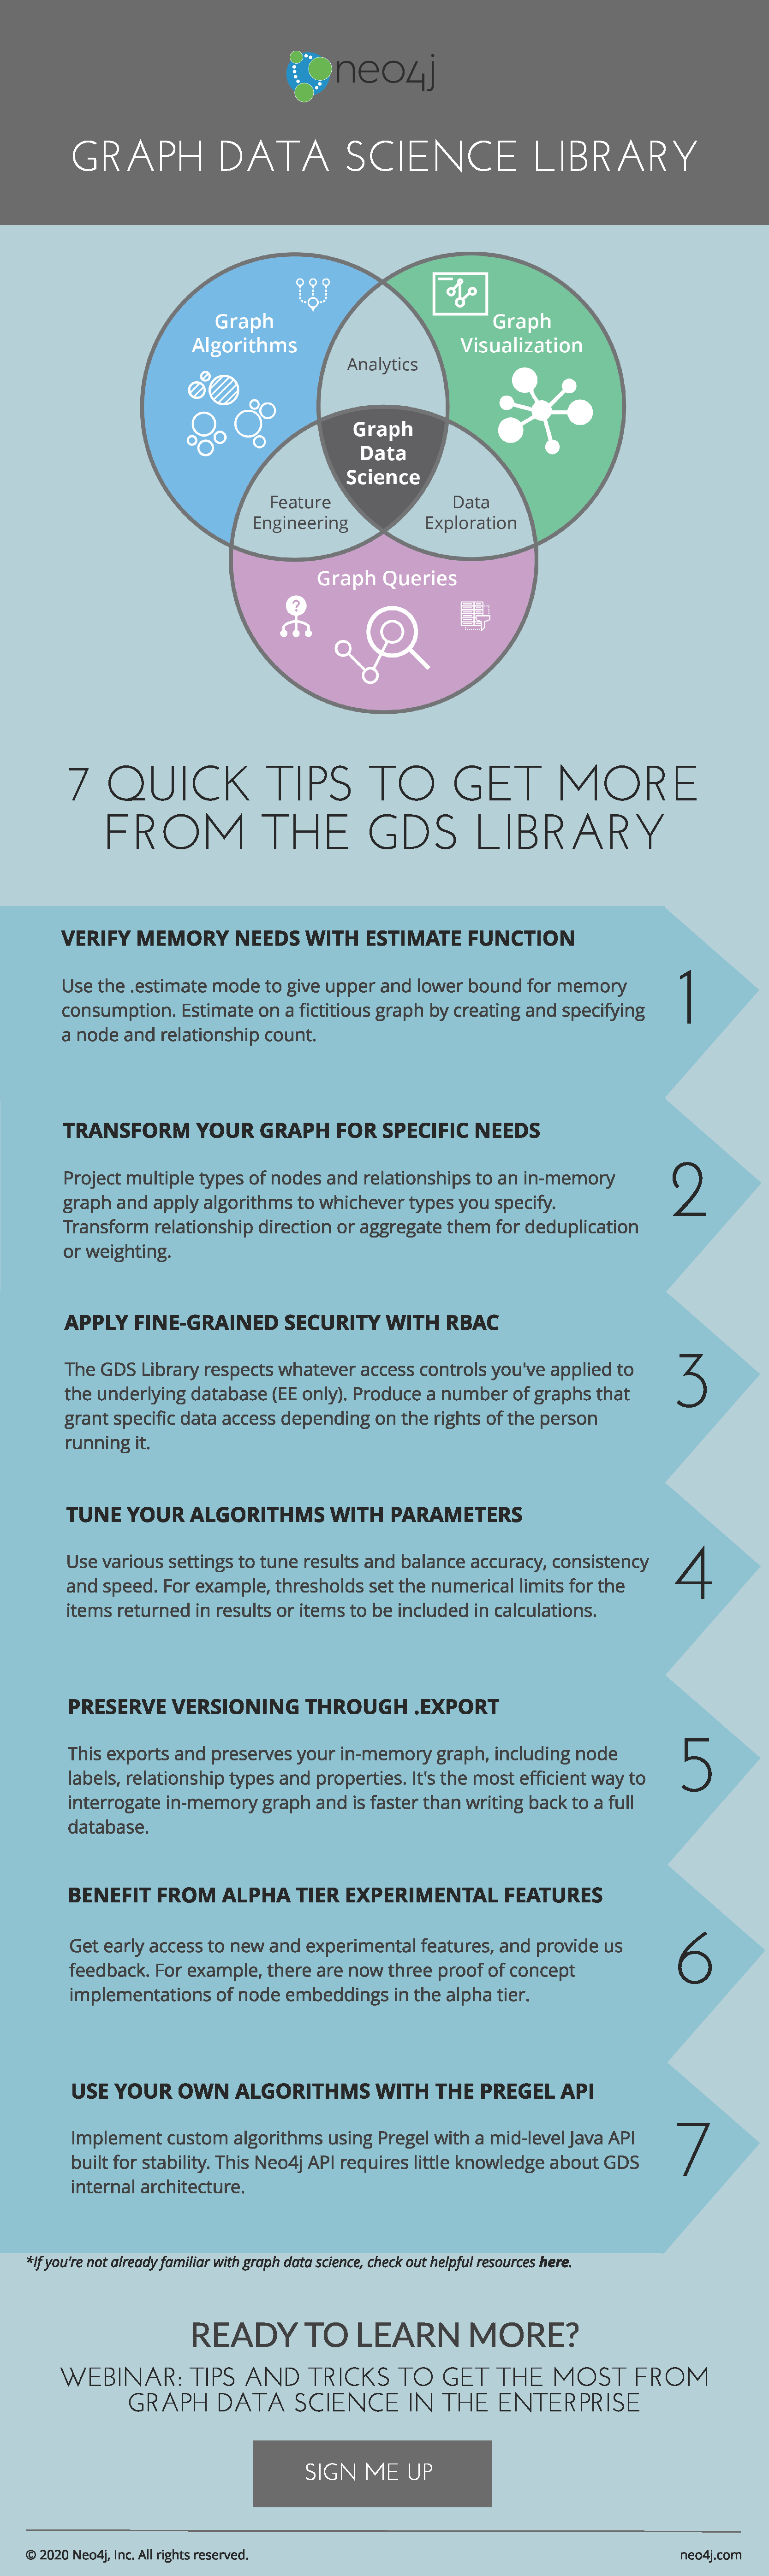 Read this tip sheet to learn 7 more advanced tips to enhance the GDS Library experience.